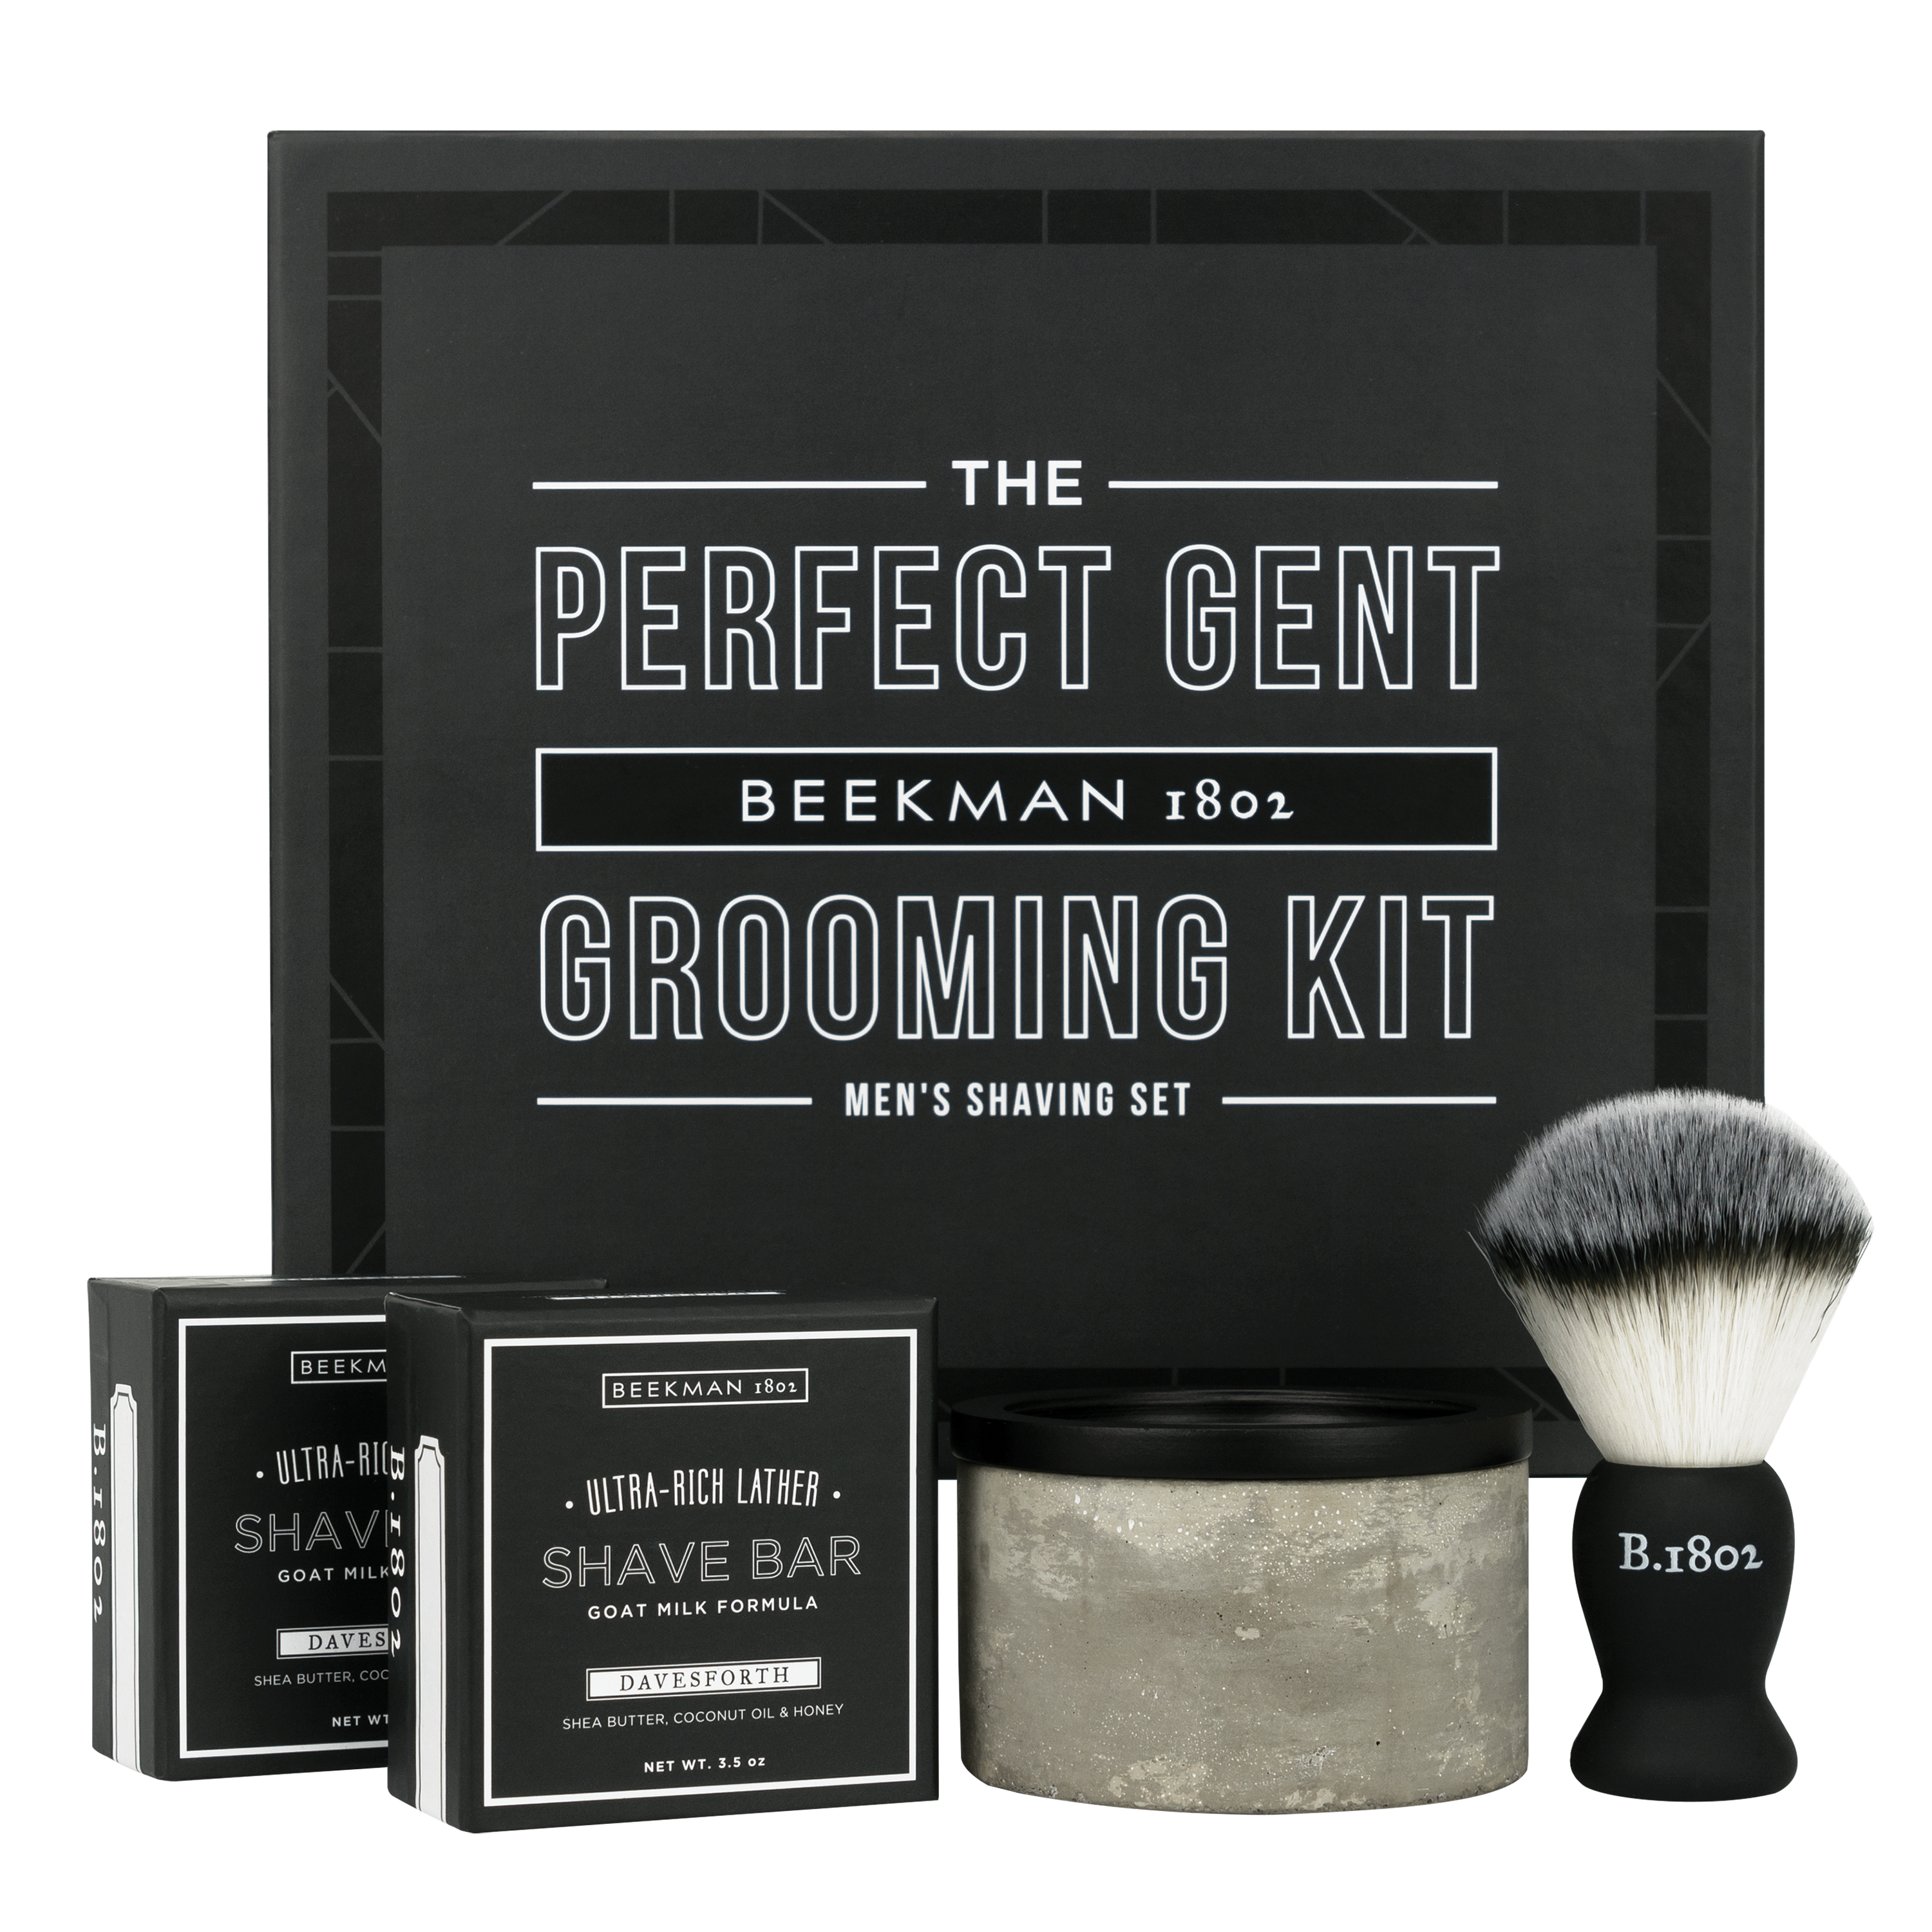 The Perfect Gent's Grooming Kit